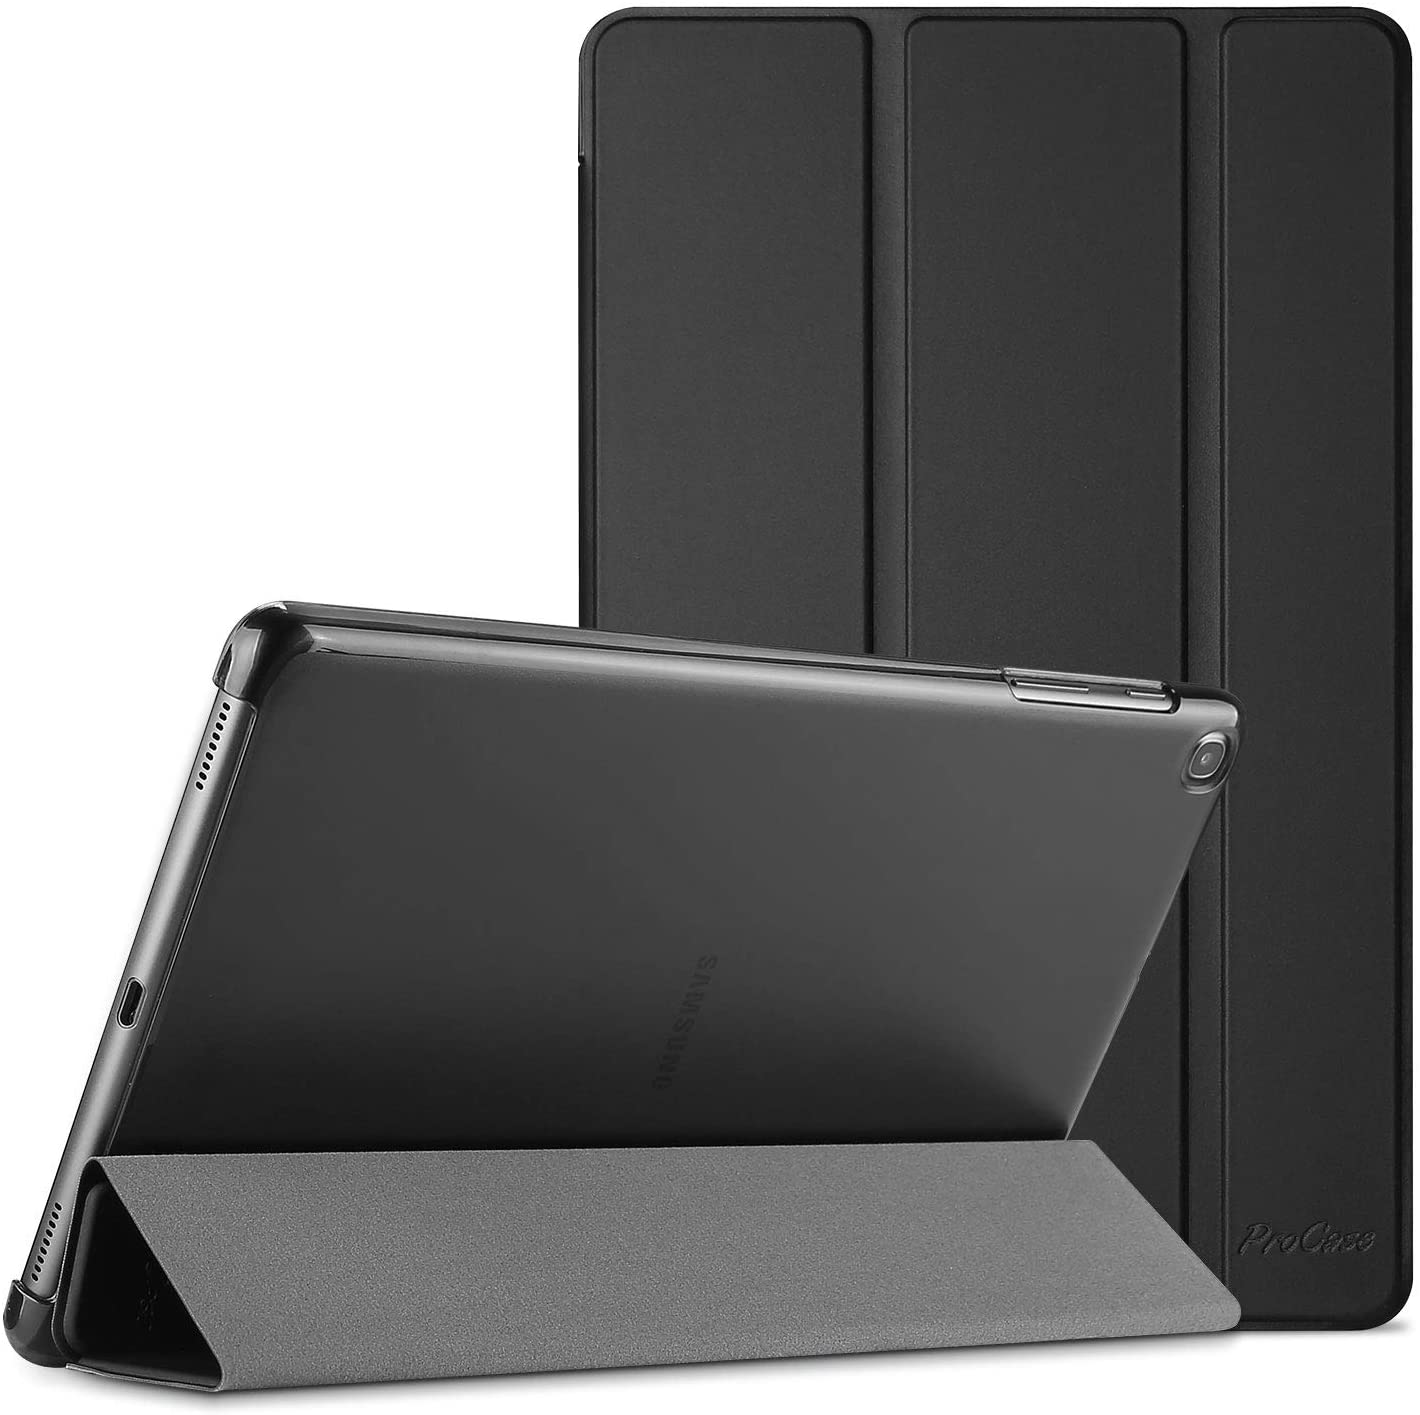 ProCase Galaxy Tab A 10.1 Case 2019 Model T510 T515 T517, Slim Lightweight Stand Case Shell Cover for 10.1 Inch Galaxy Tab A Tablet SM-T510 SM-T515 SM-T517 2019 Release -Black